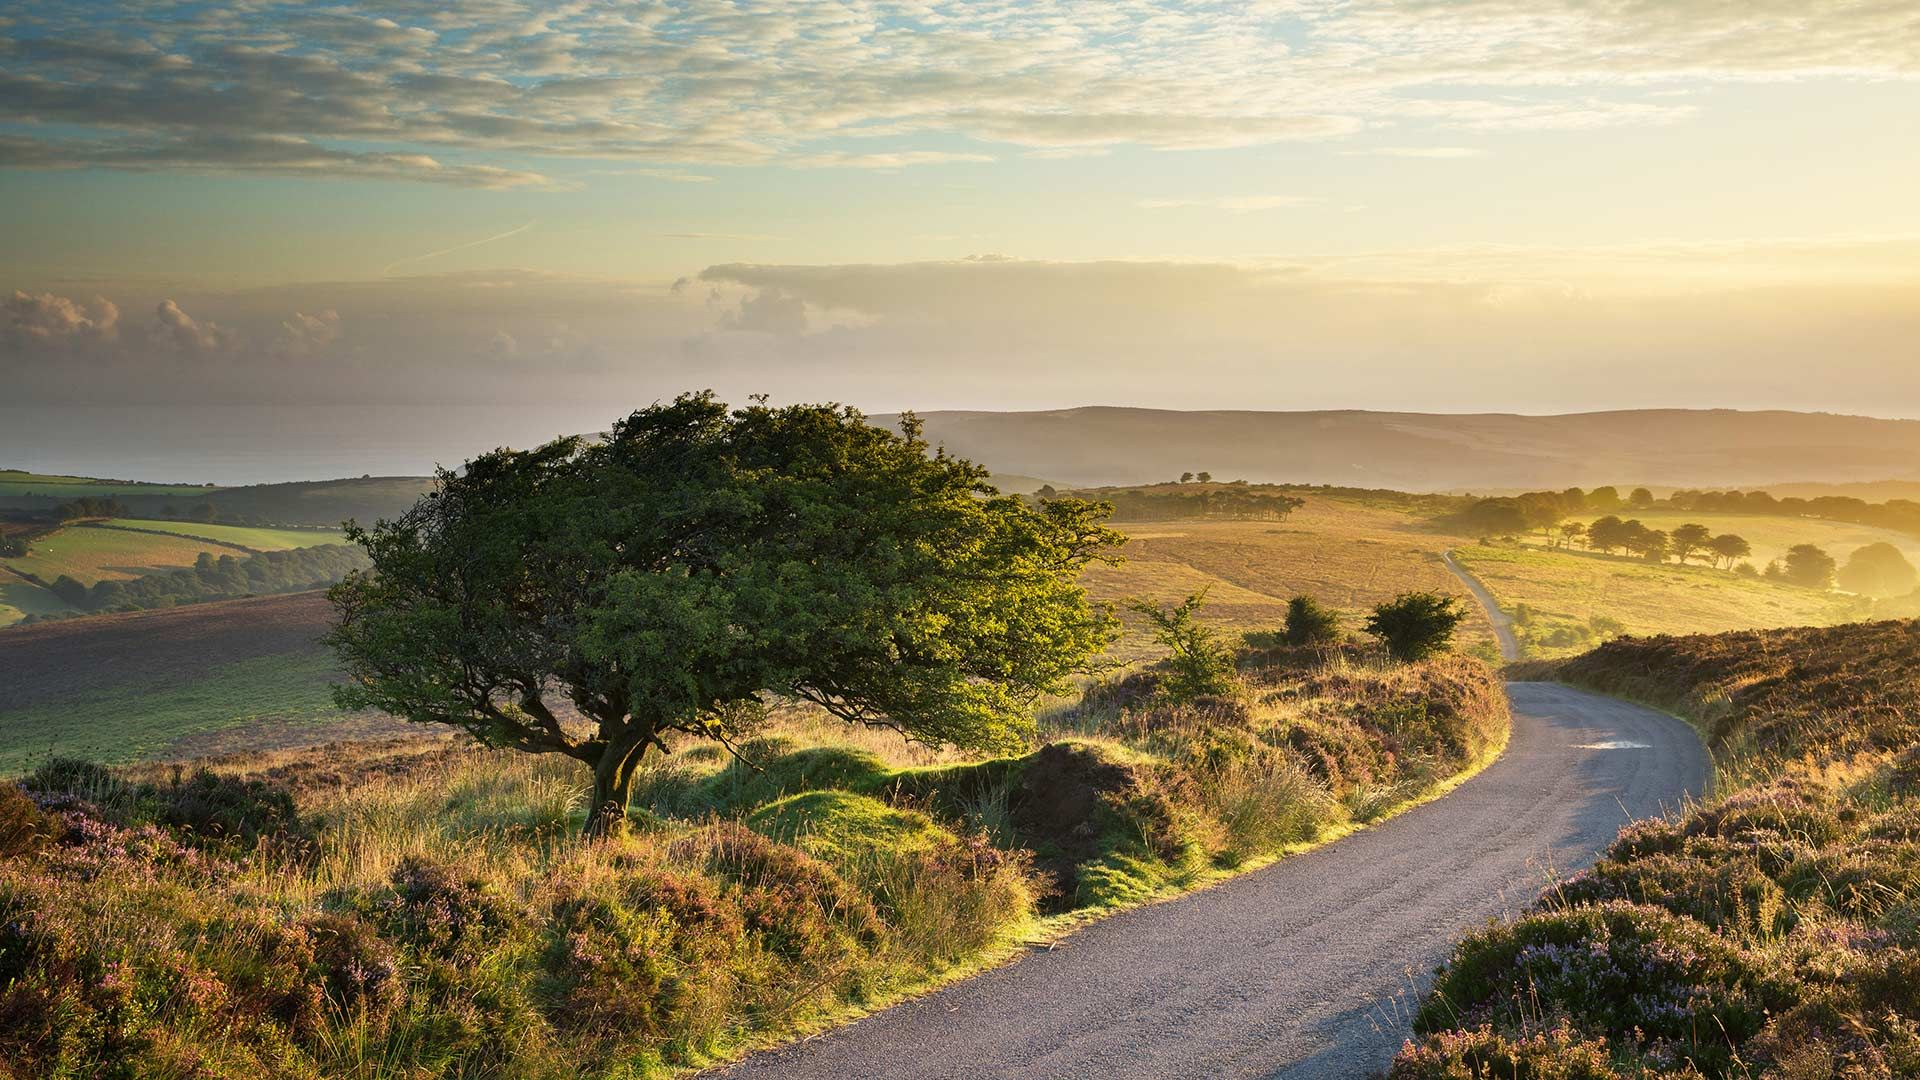 The road over Stoke Pero Common, Dunkery Hill, Exmoor, England